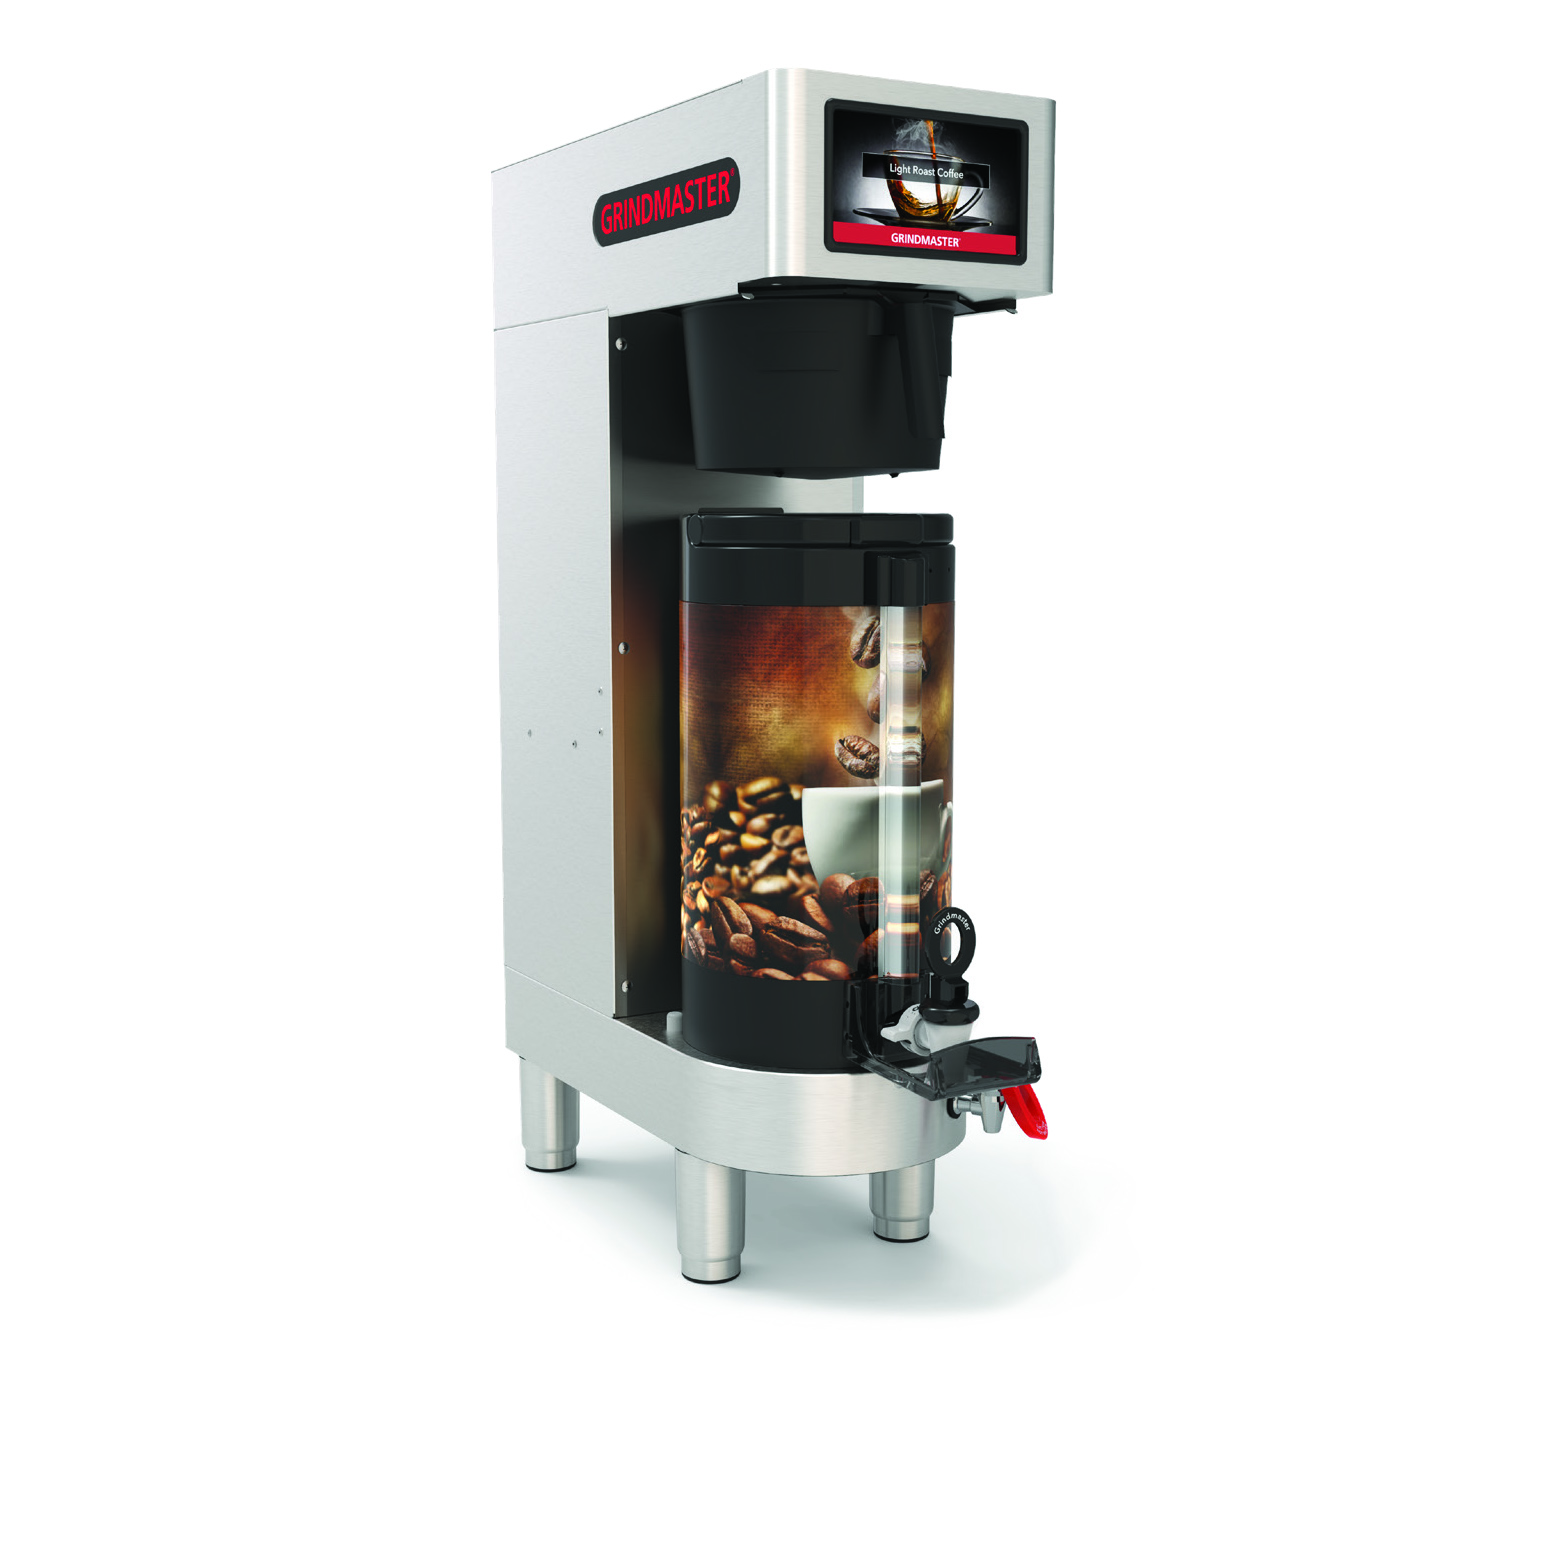 Grindmaster-Cecilware PBC-1V coffee brewer for thermal server